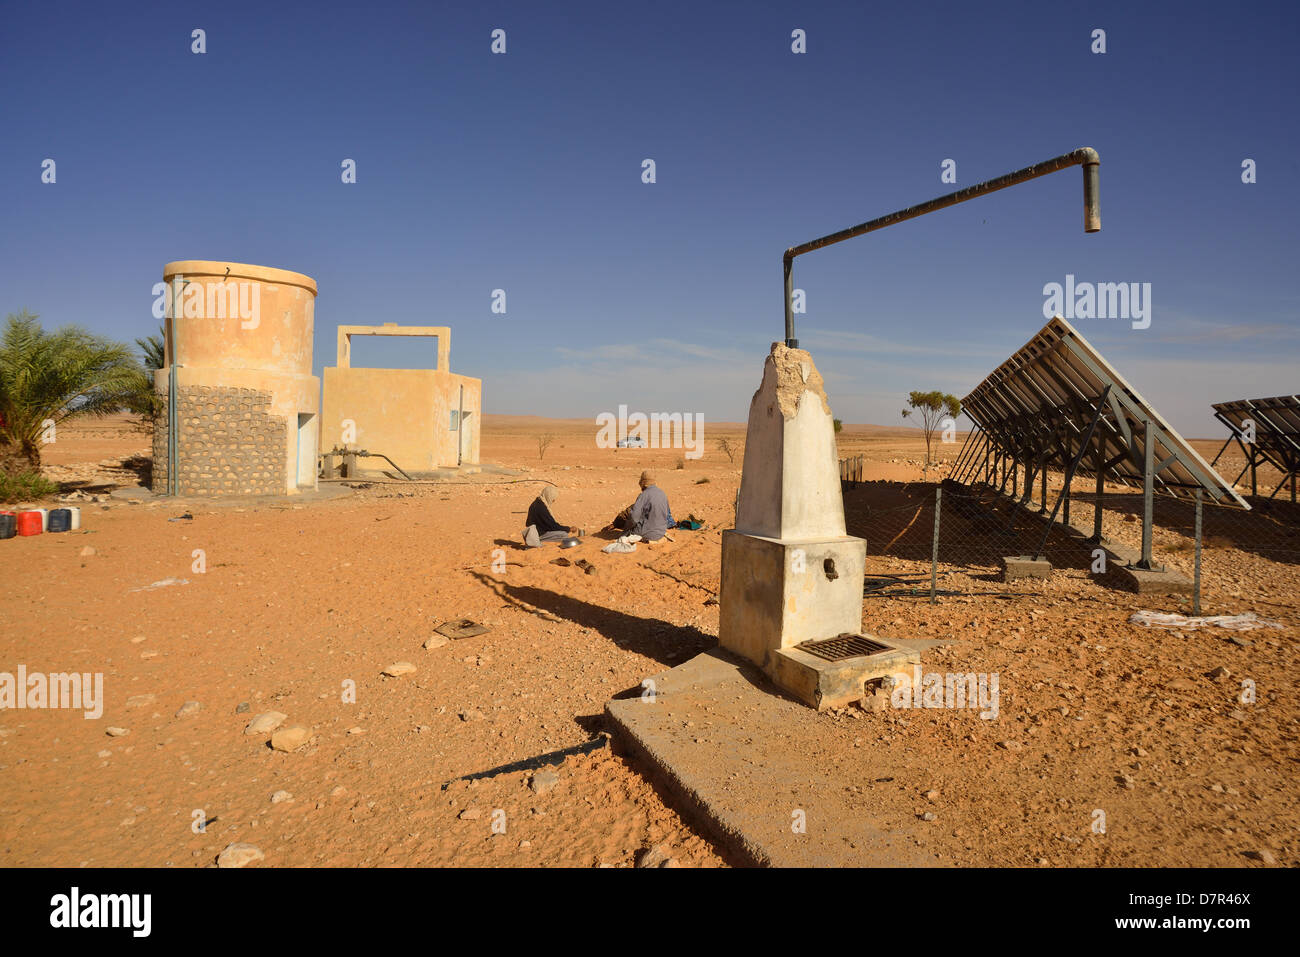 Solar Panels generating Electricity for a water pumpstation in the desert near Douz, South of Tunisia. Stock Photo